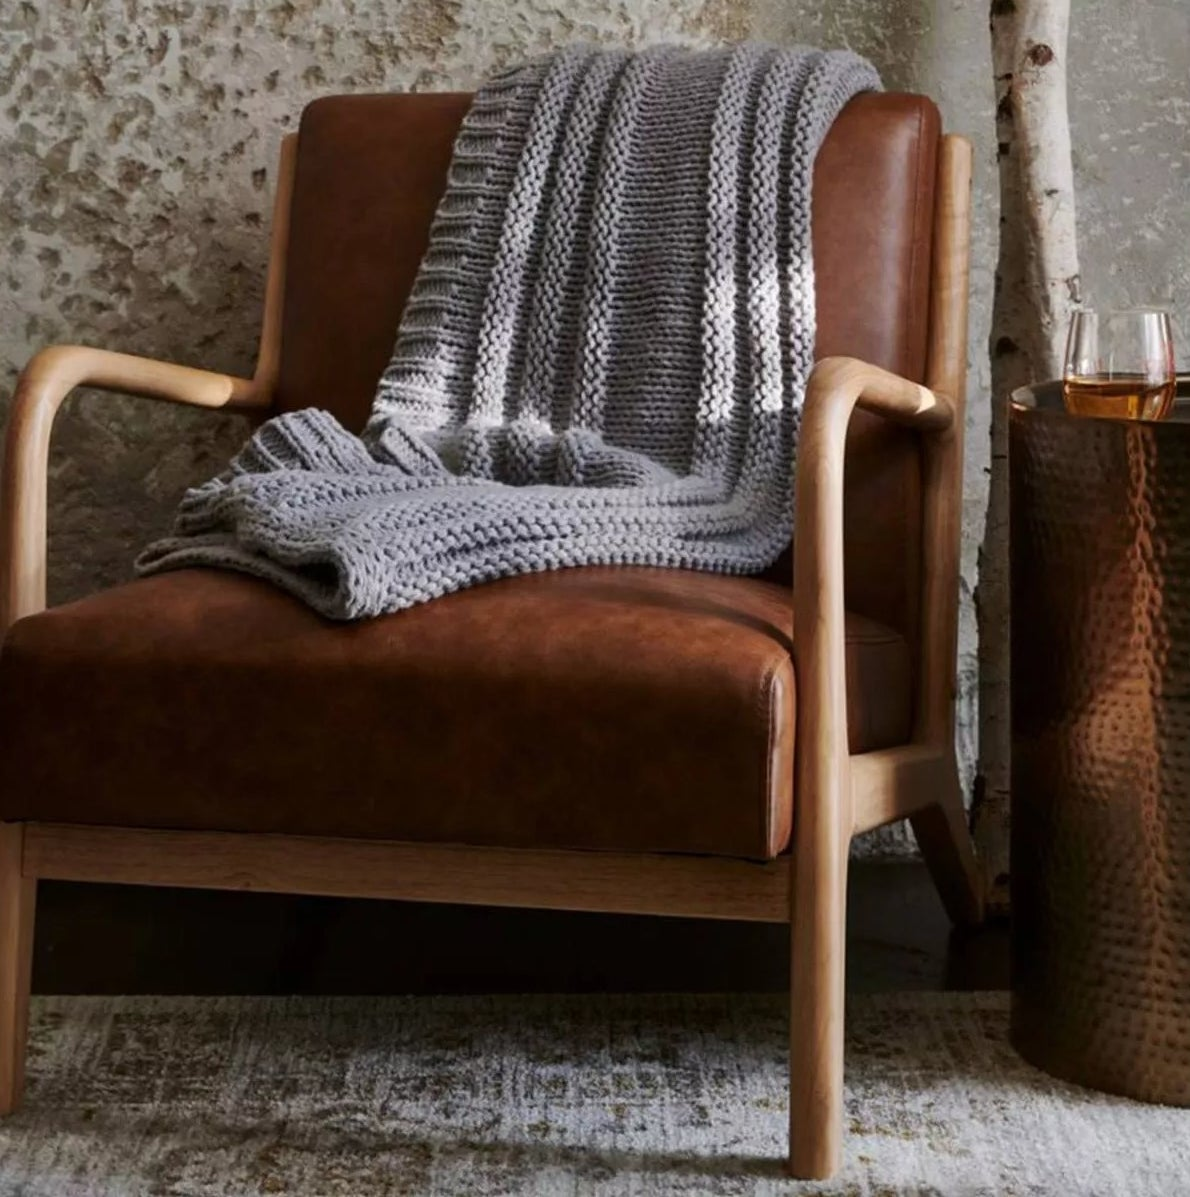 The brown leather armchair with a light wooden frame in a living room